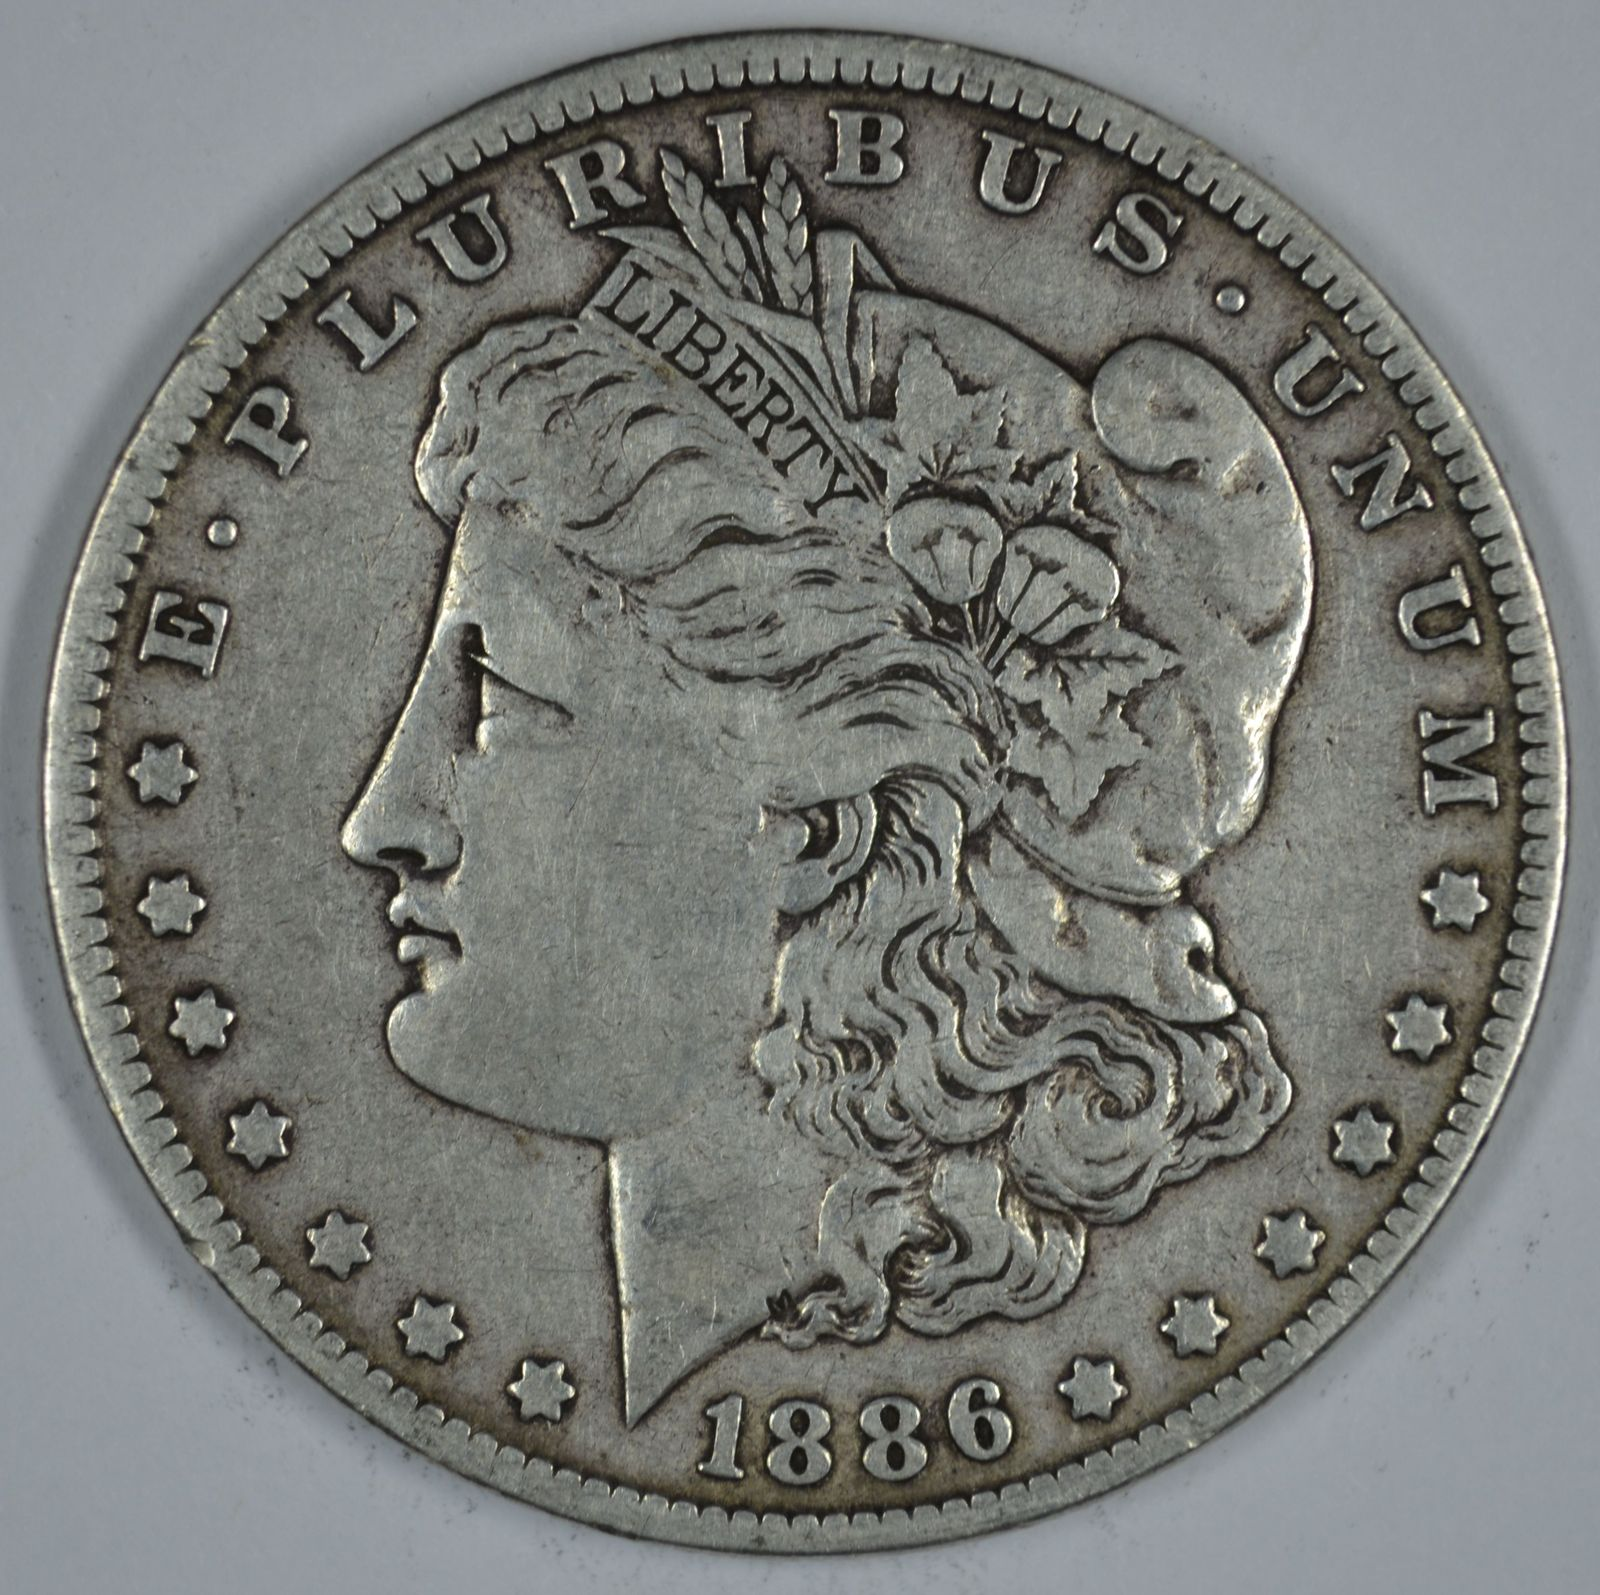 Primary image for 1886 O Morgan circulated silver dollar VG details